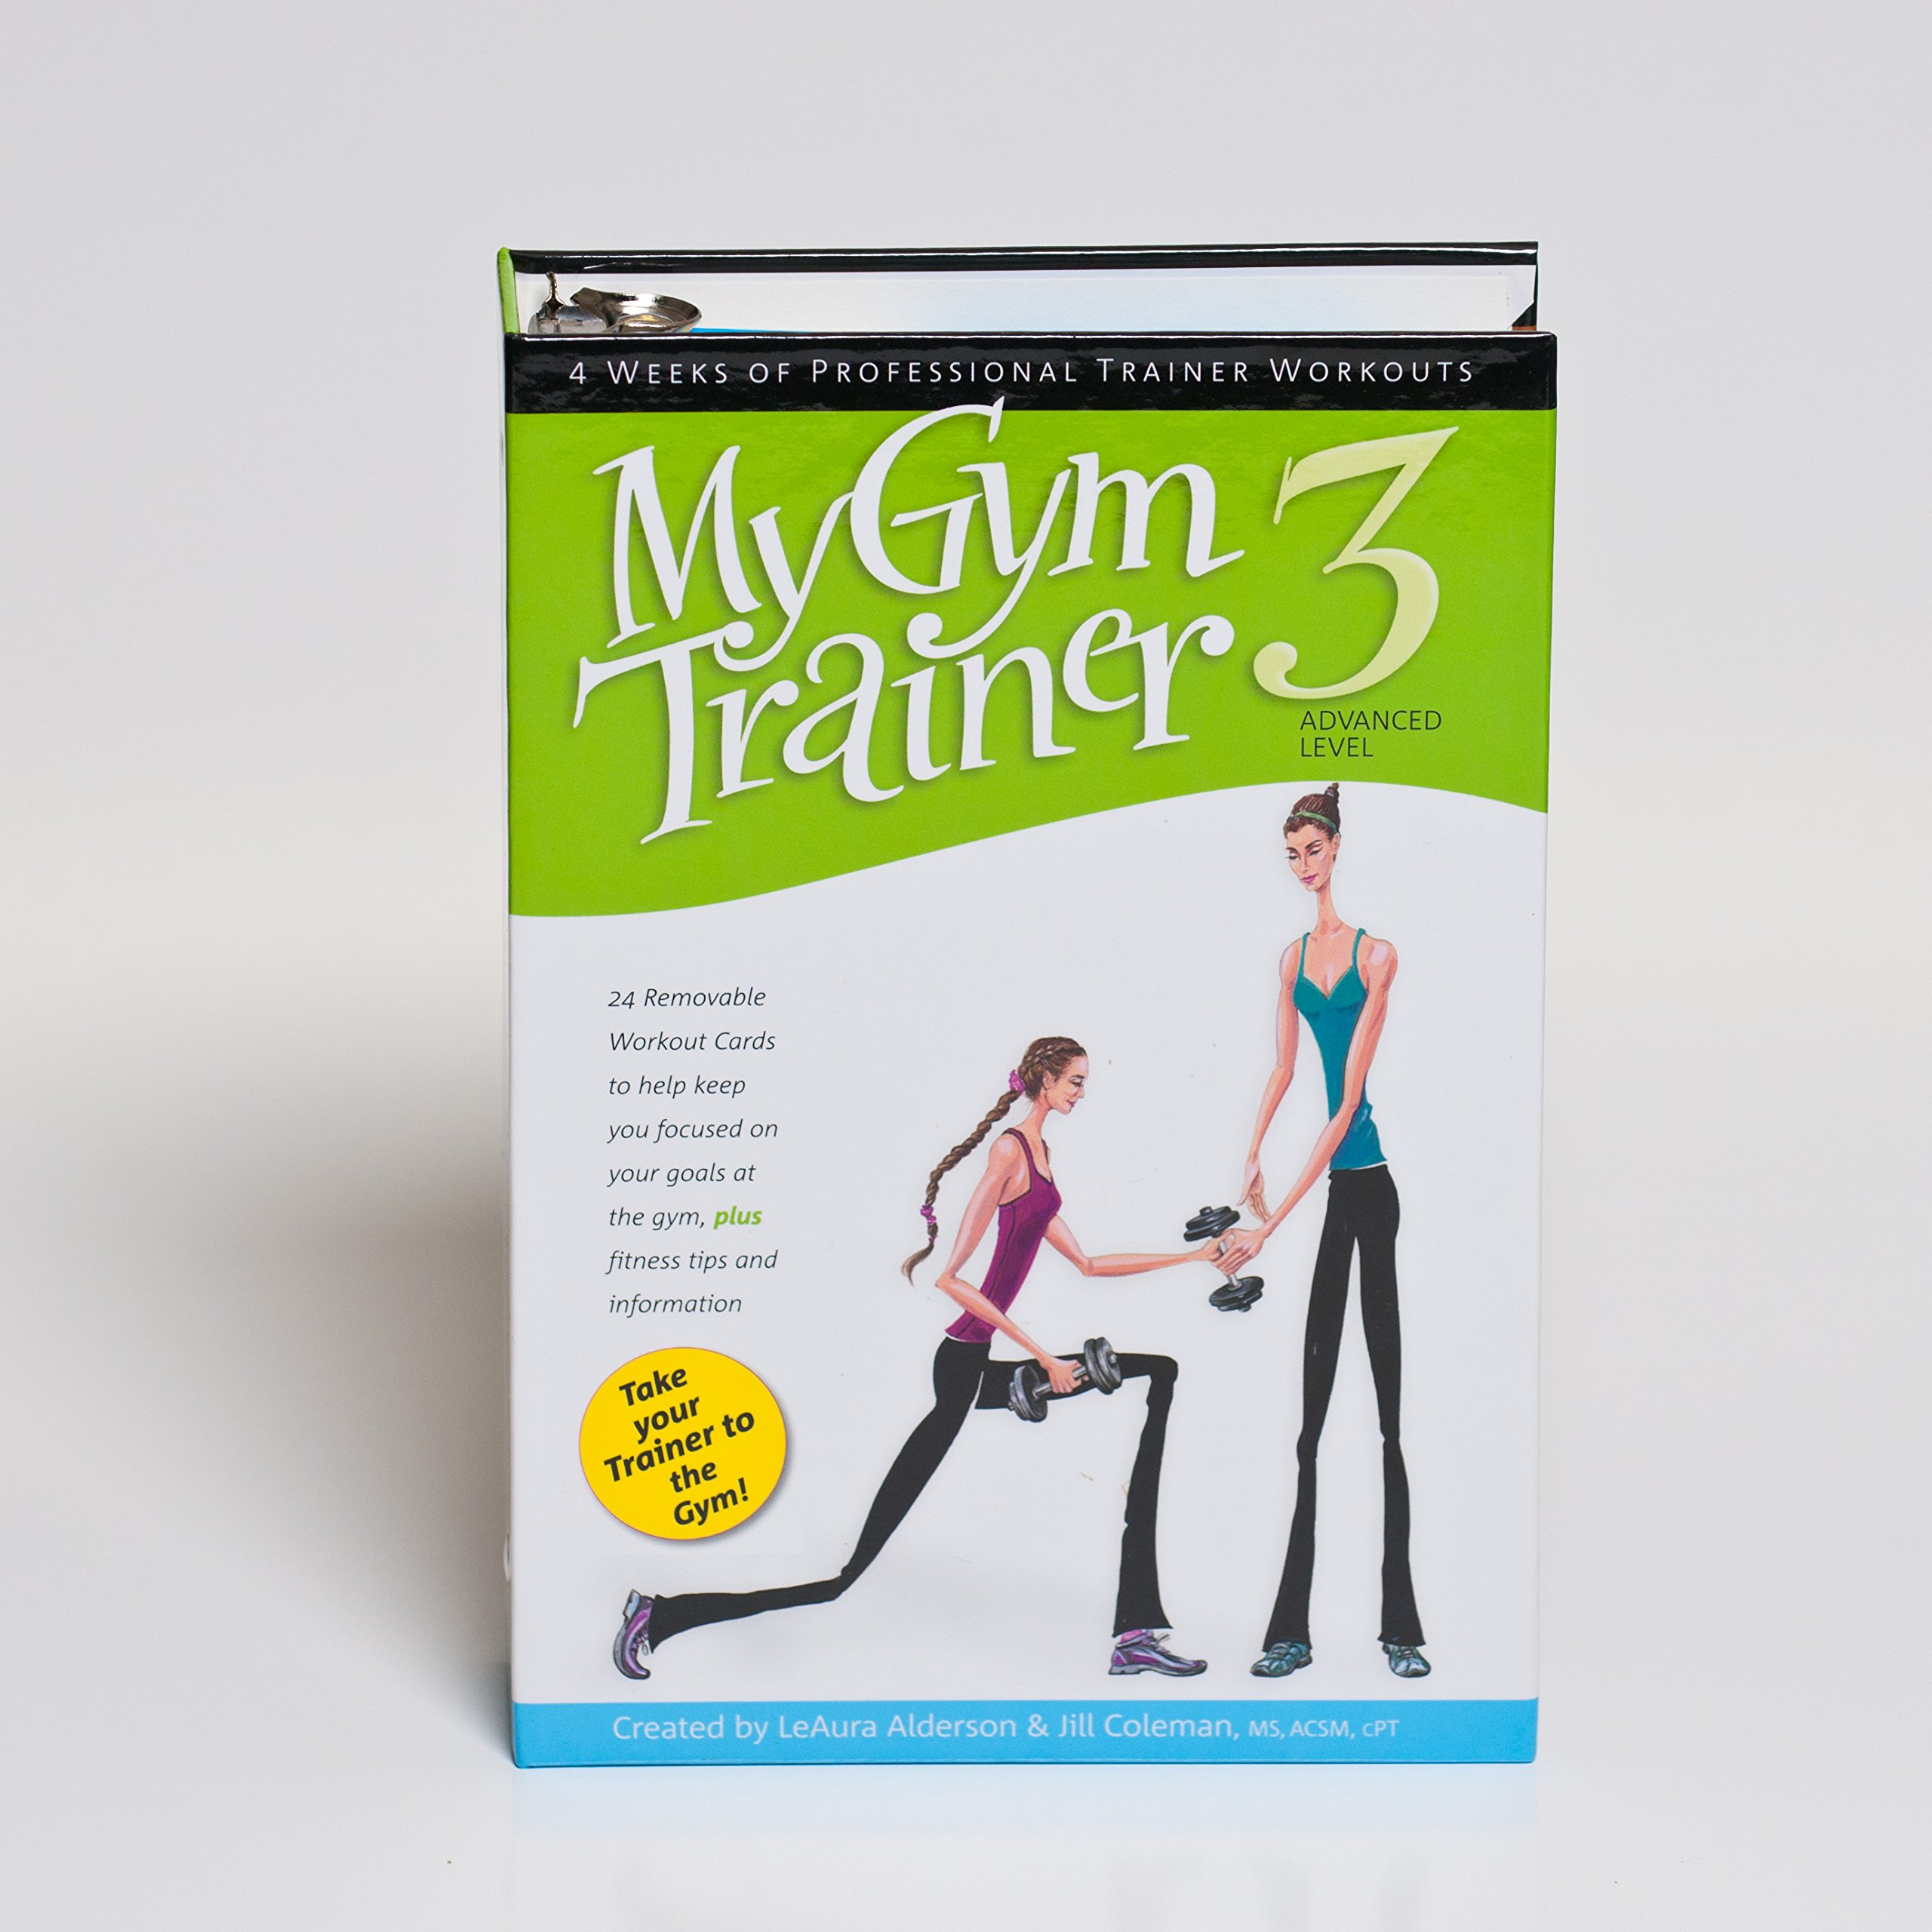 My Trainer Fitness Workout Plans - My Gym Trainer 3-Advanced 4-week workout cycle